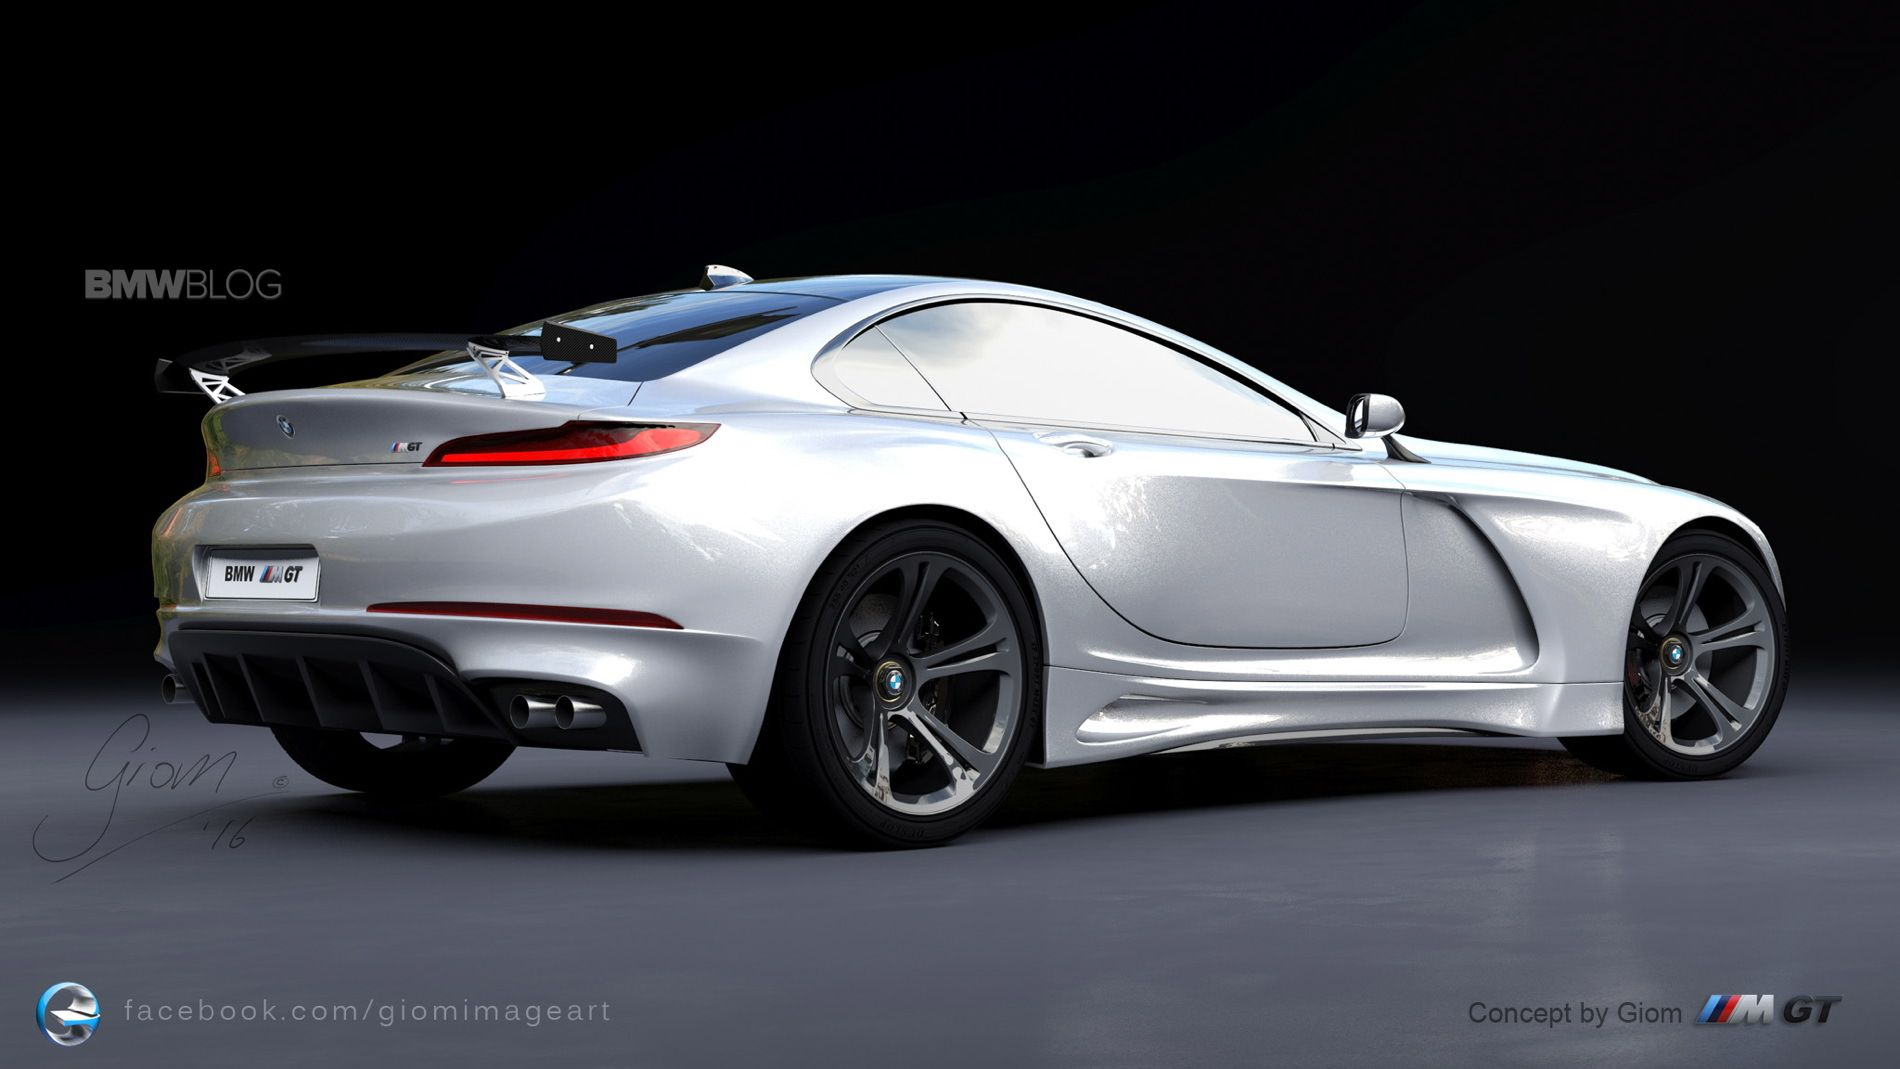 Bmw Mgt Rendering Live Life Love Follow Your Heart Bmwlifem Super Cars Bmw Sports Car